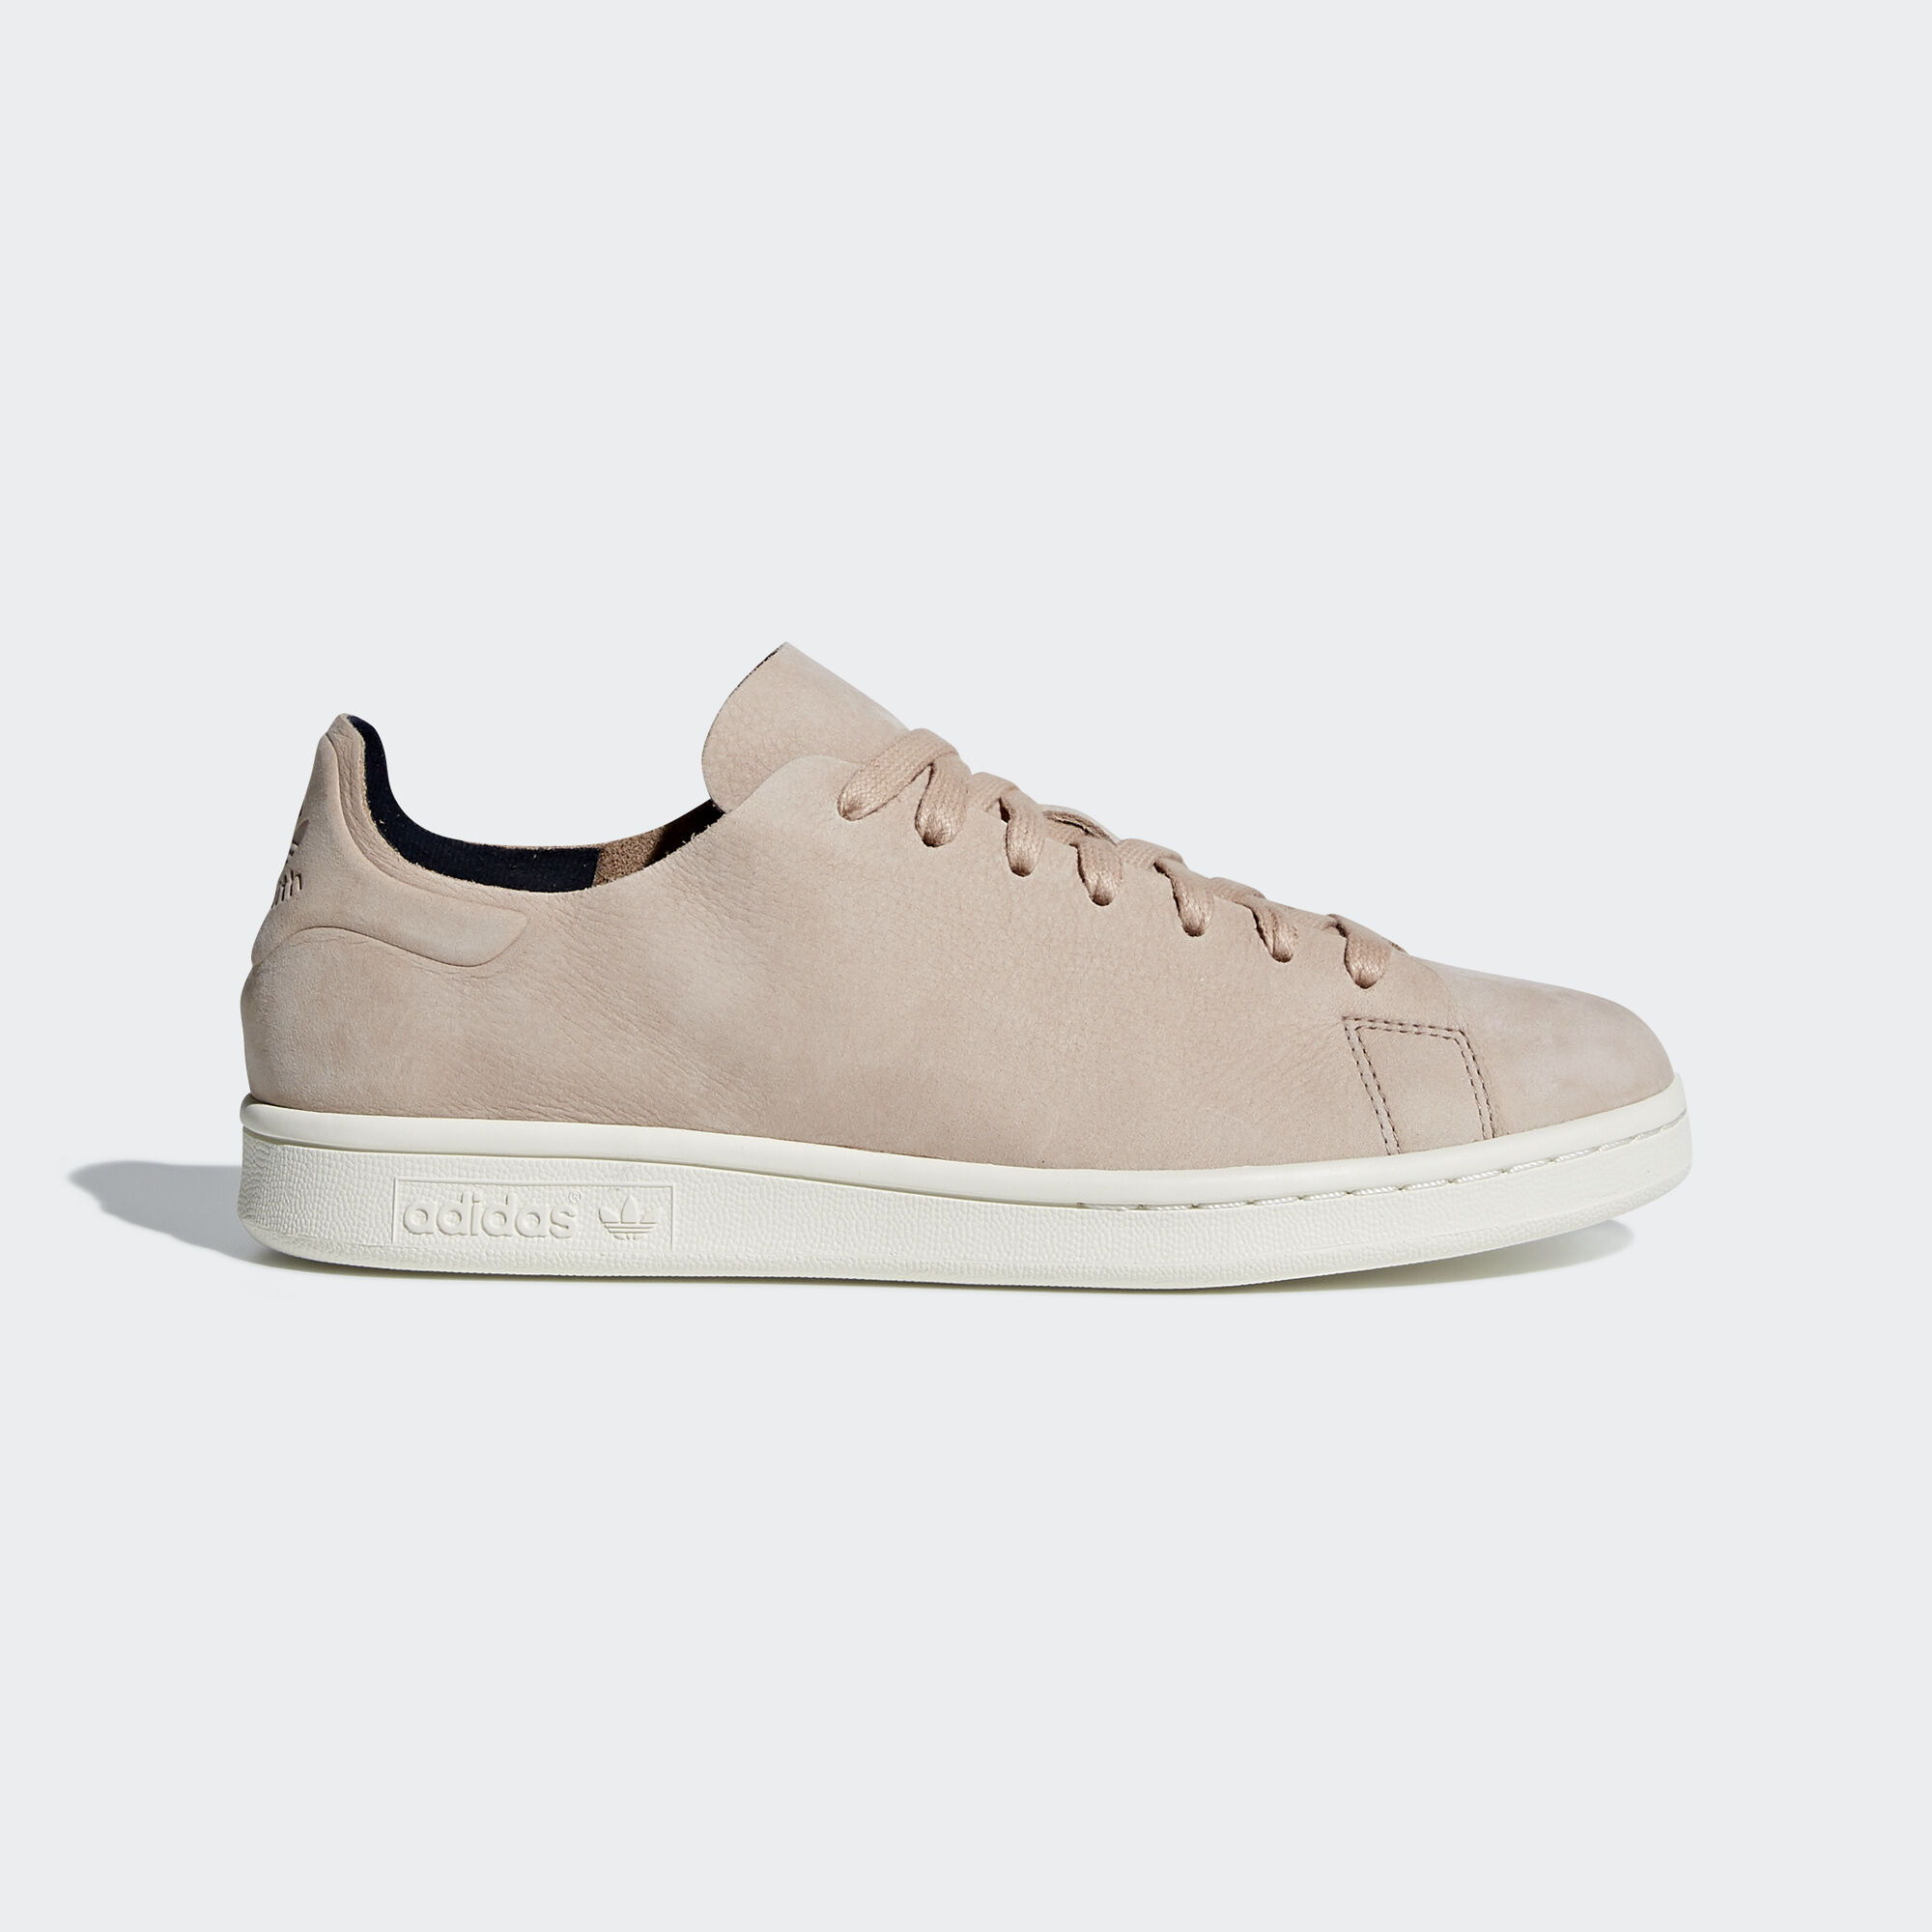 adidas - Stan Smith Nuud Shoes Ash Pearl/Ash Pearl/Legend Ink CQ2898